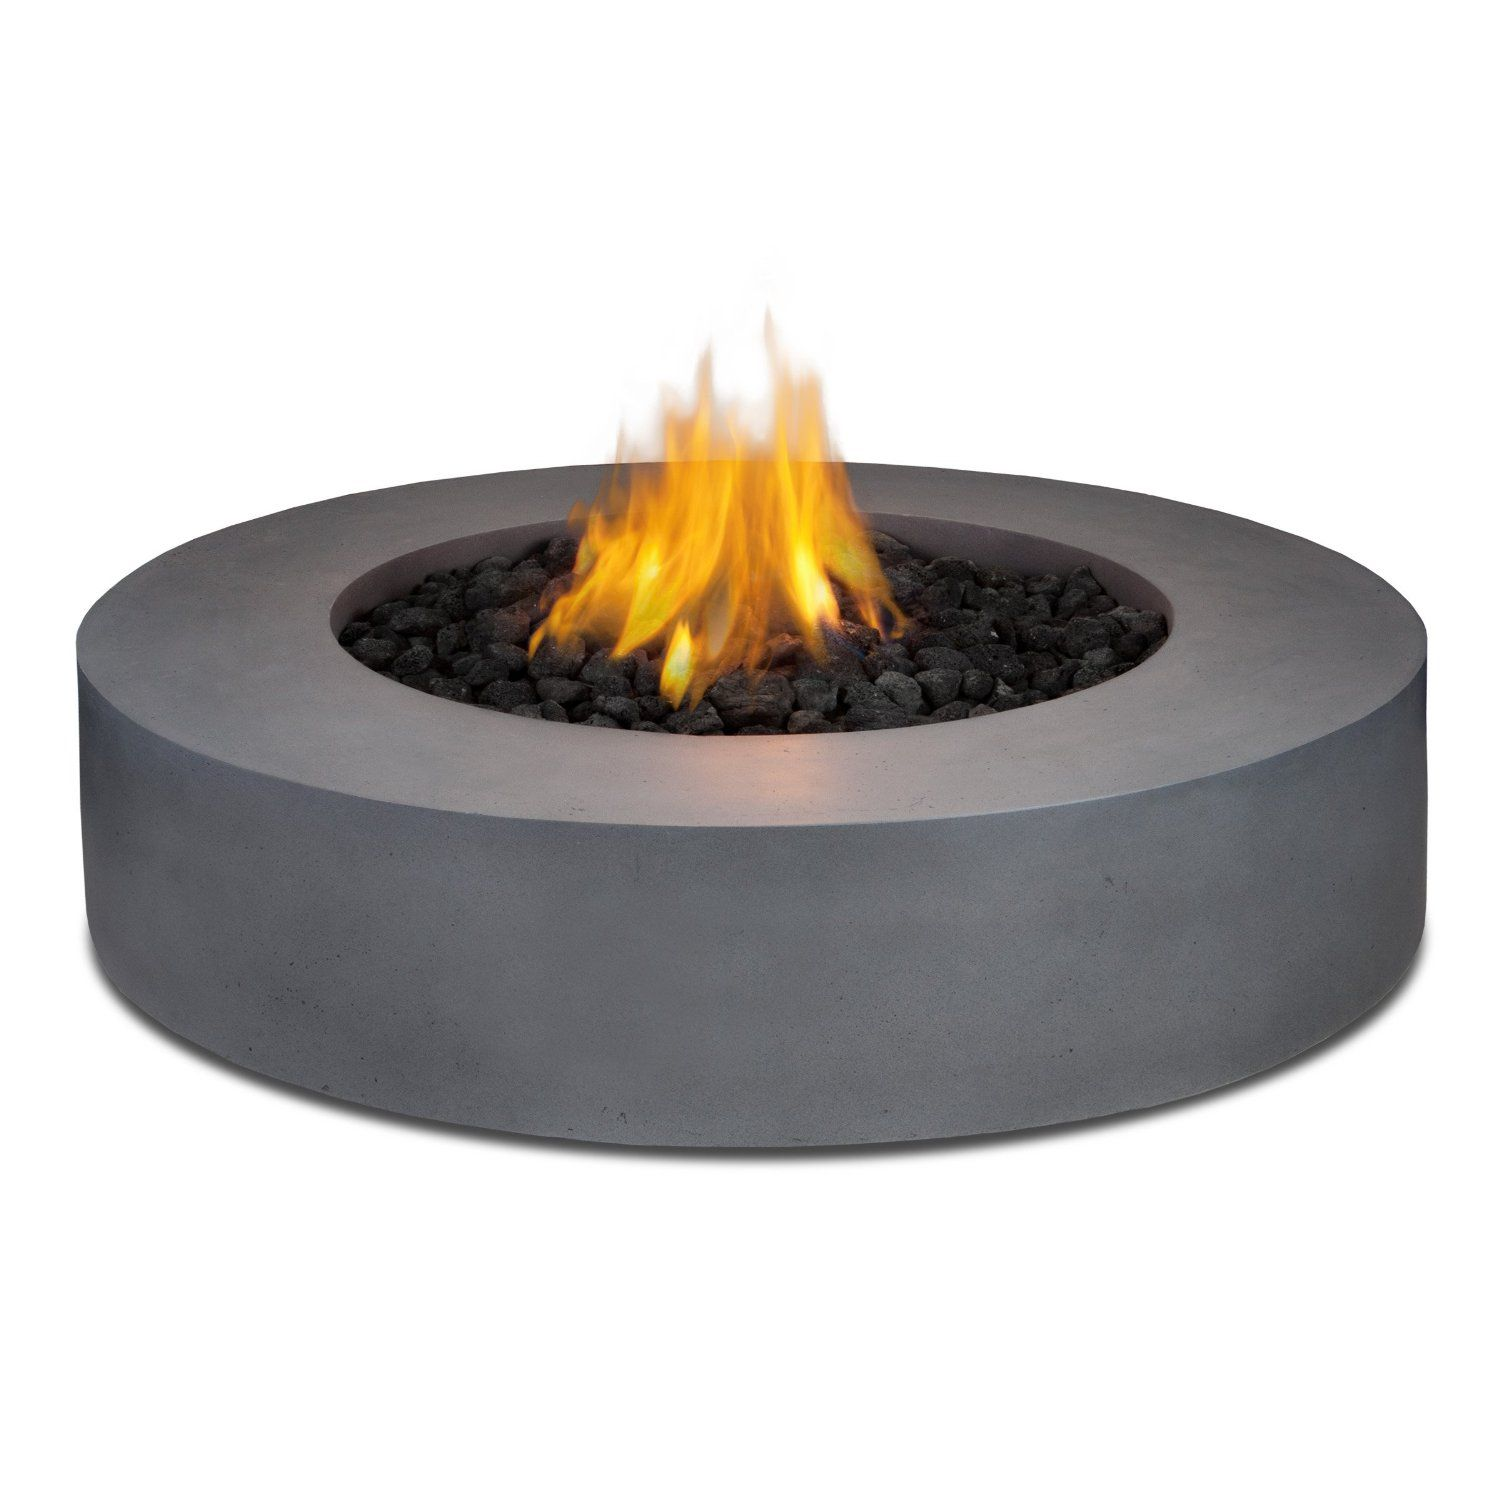 Real Flame Mezzo Round Propane Fire Pit Table In Flint Gray Patio Lawn Garden